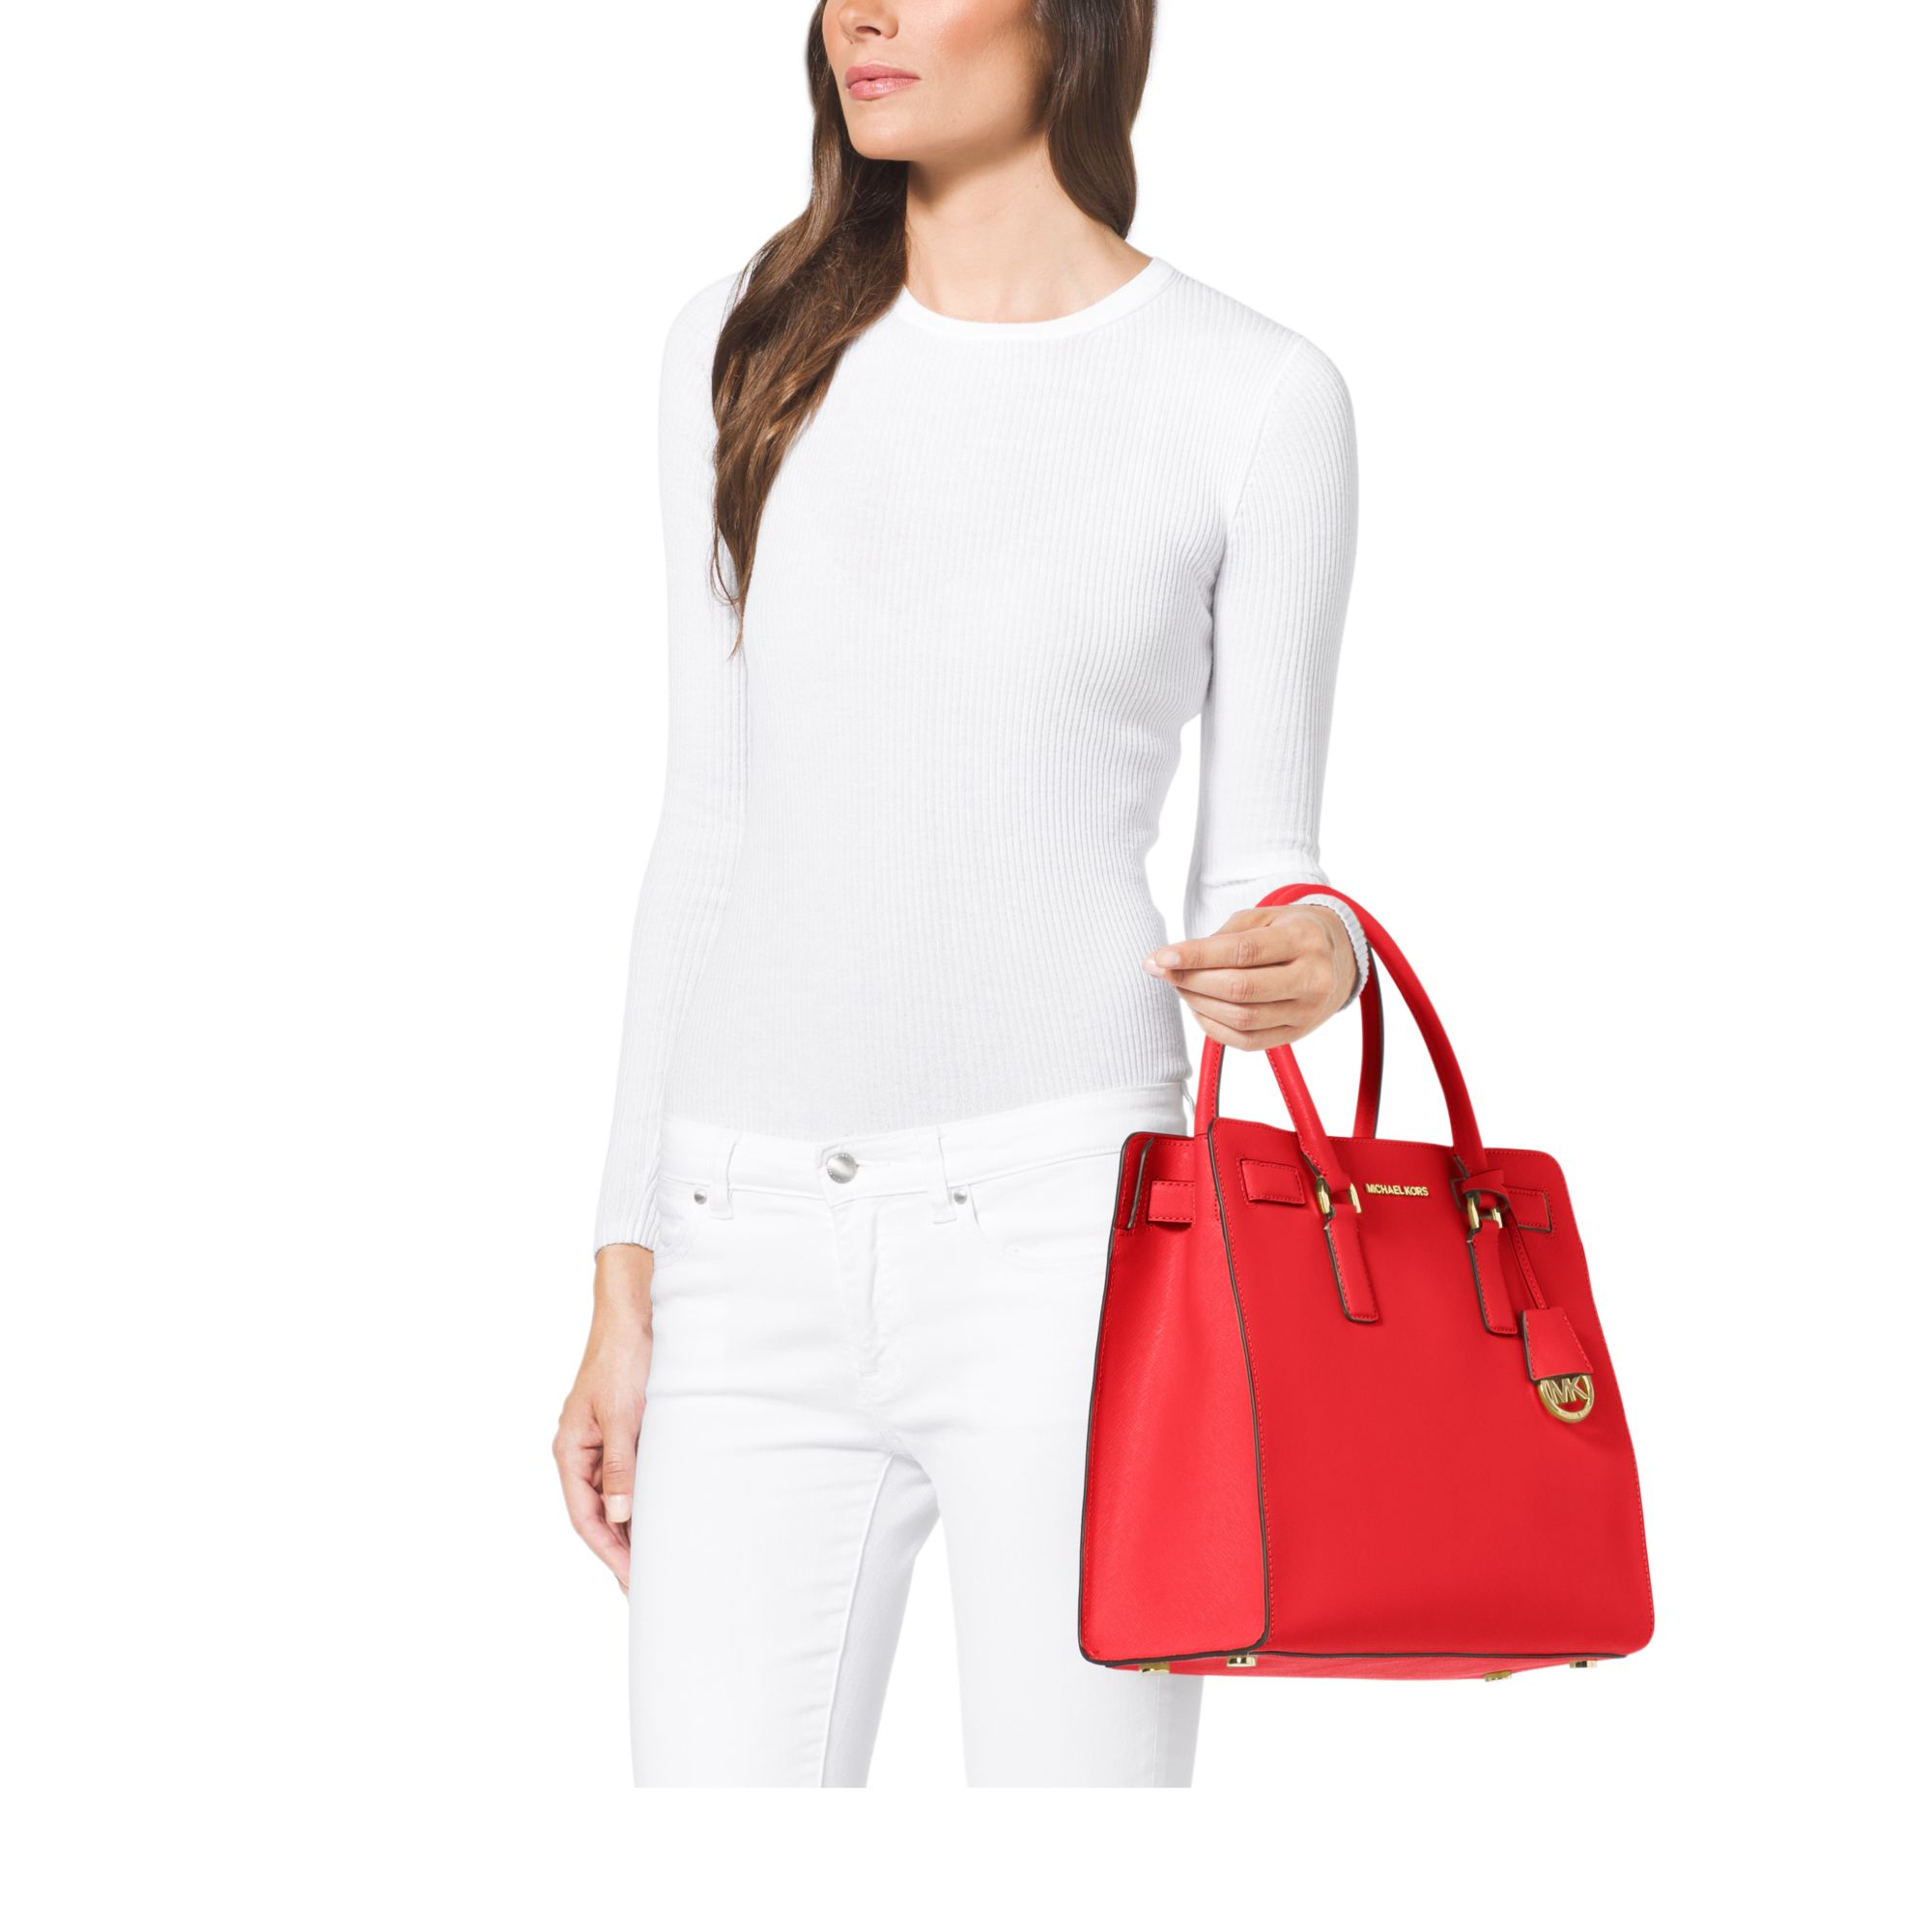 Michael kors Dillon Large Saffiano Leather Tote in Red | Lyst